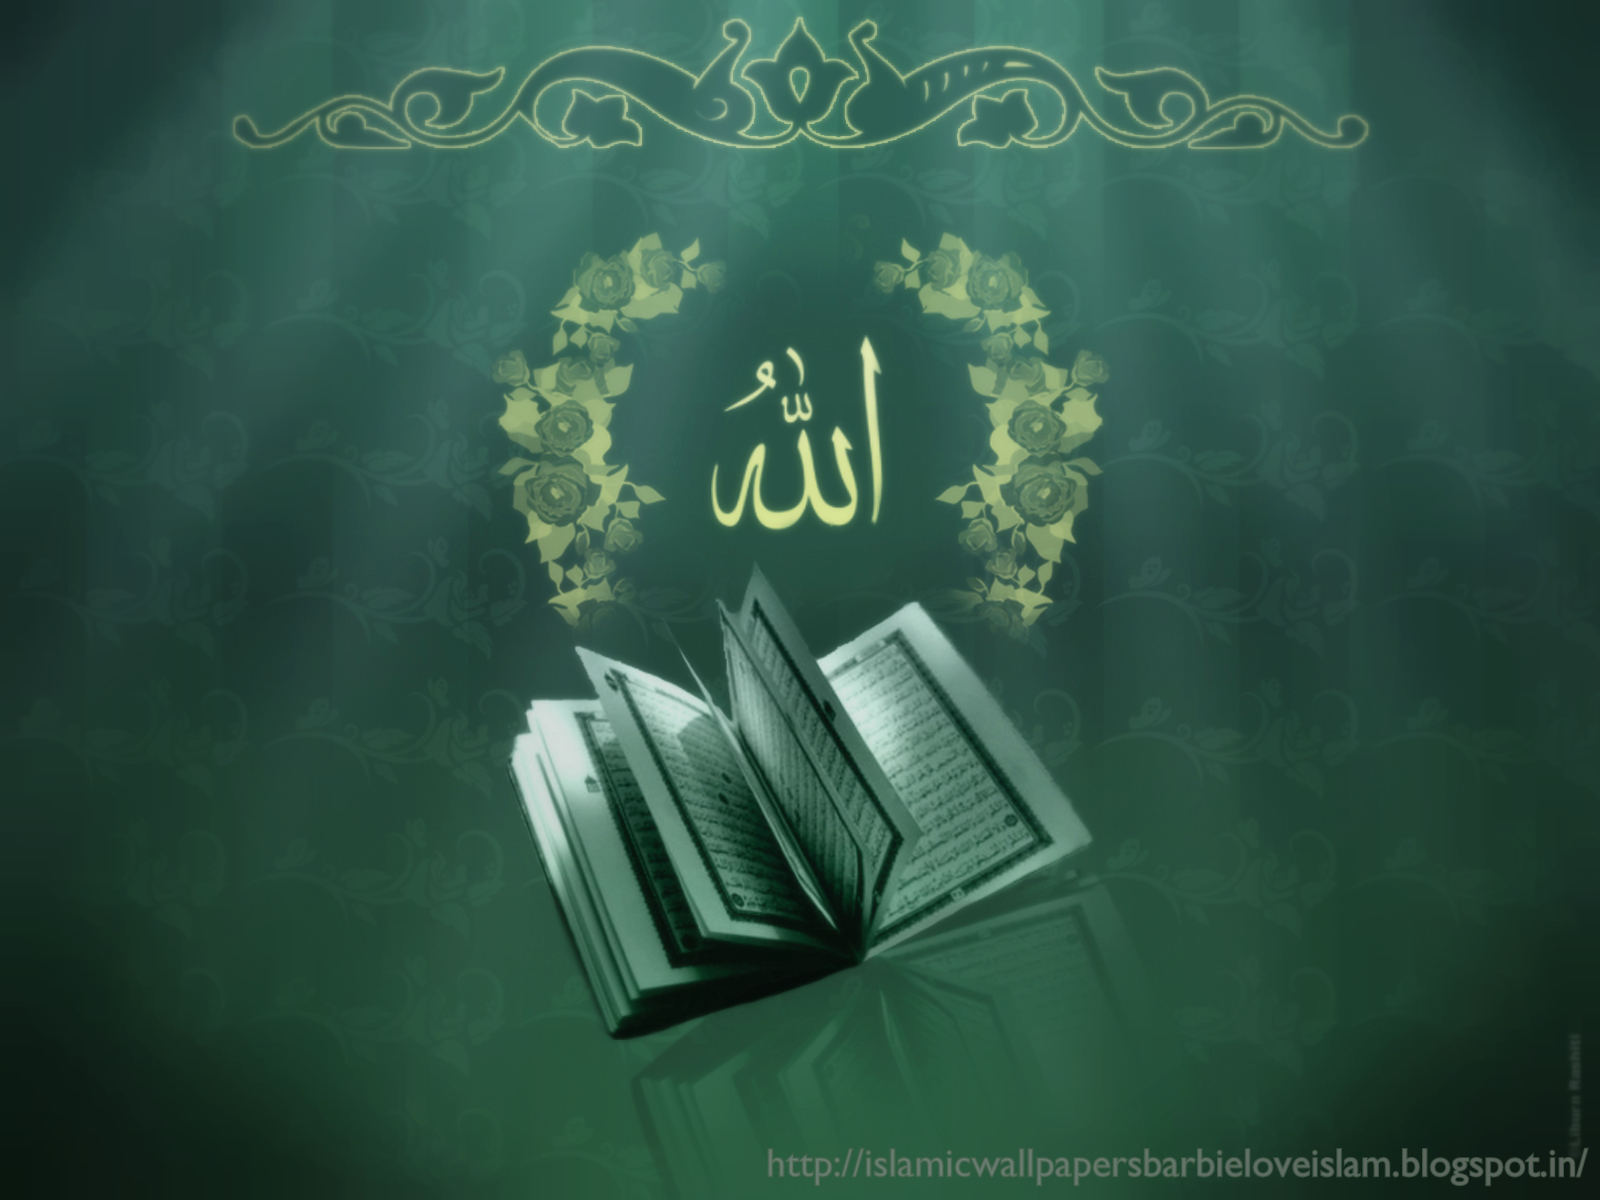 Islamic Wallpapers Barbie Loveislam Green Allah Swt And